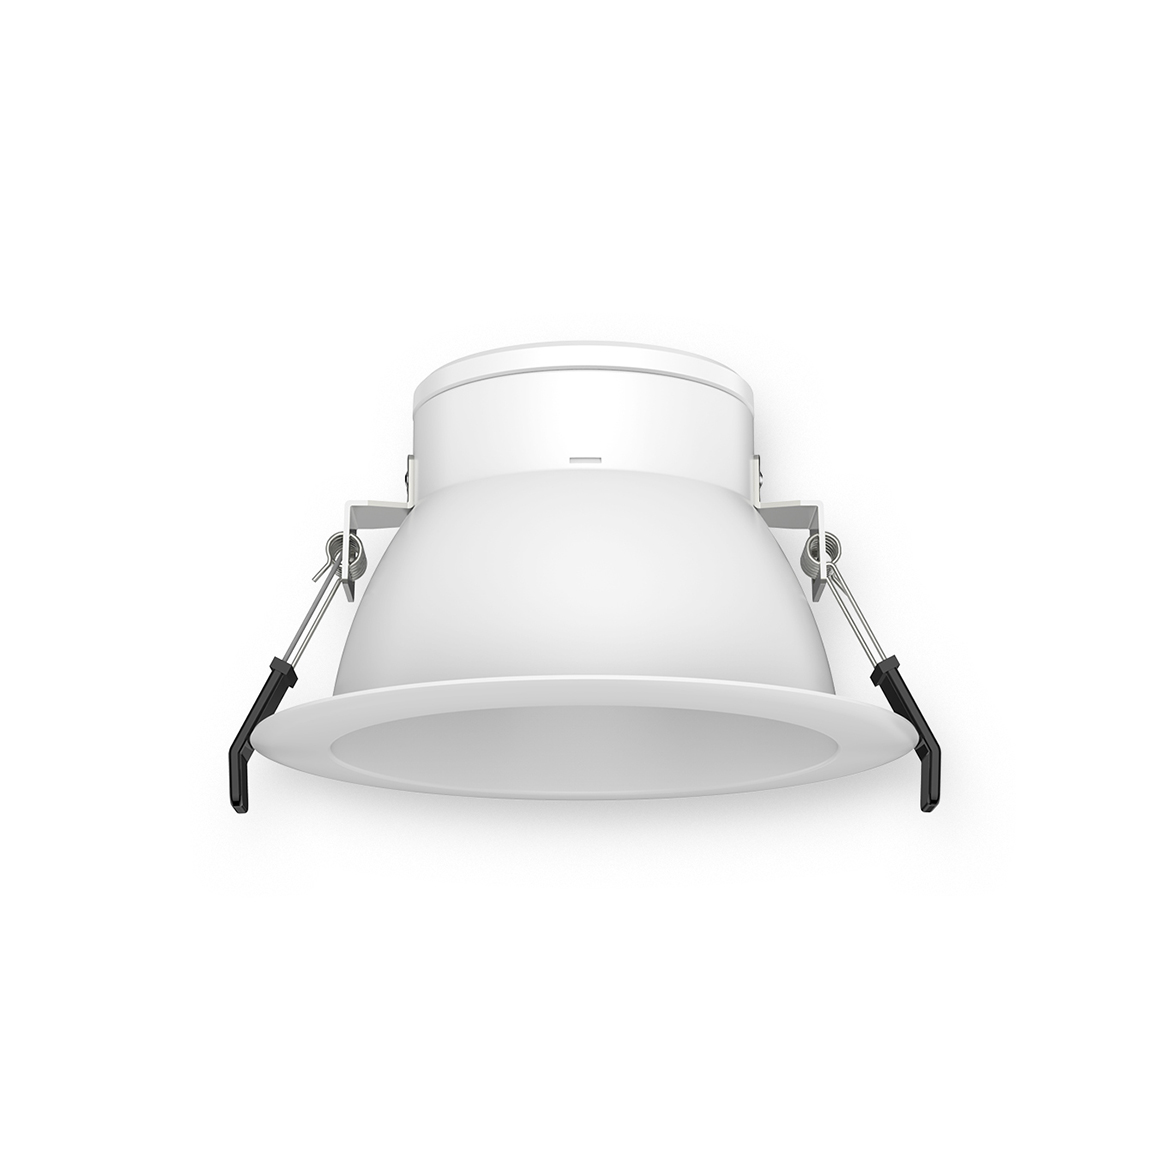 DownLight DS1 2600lm